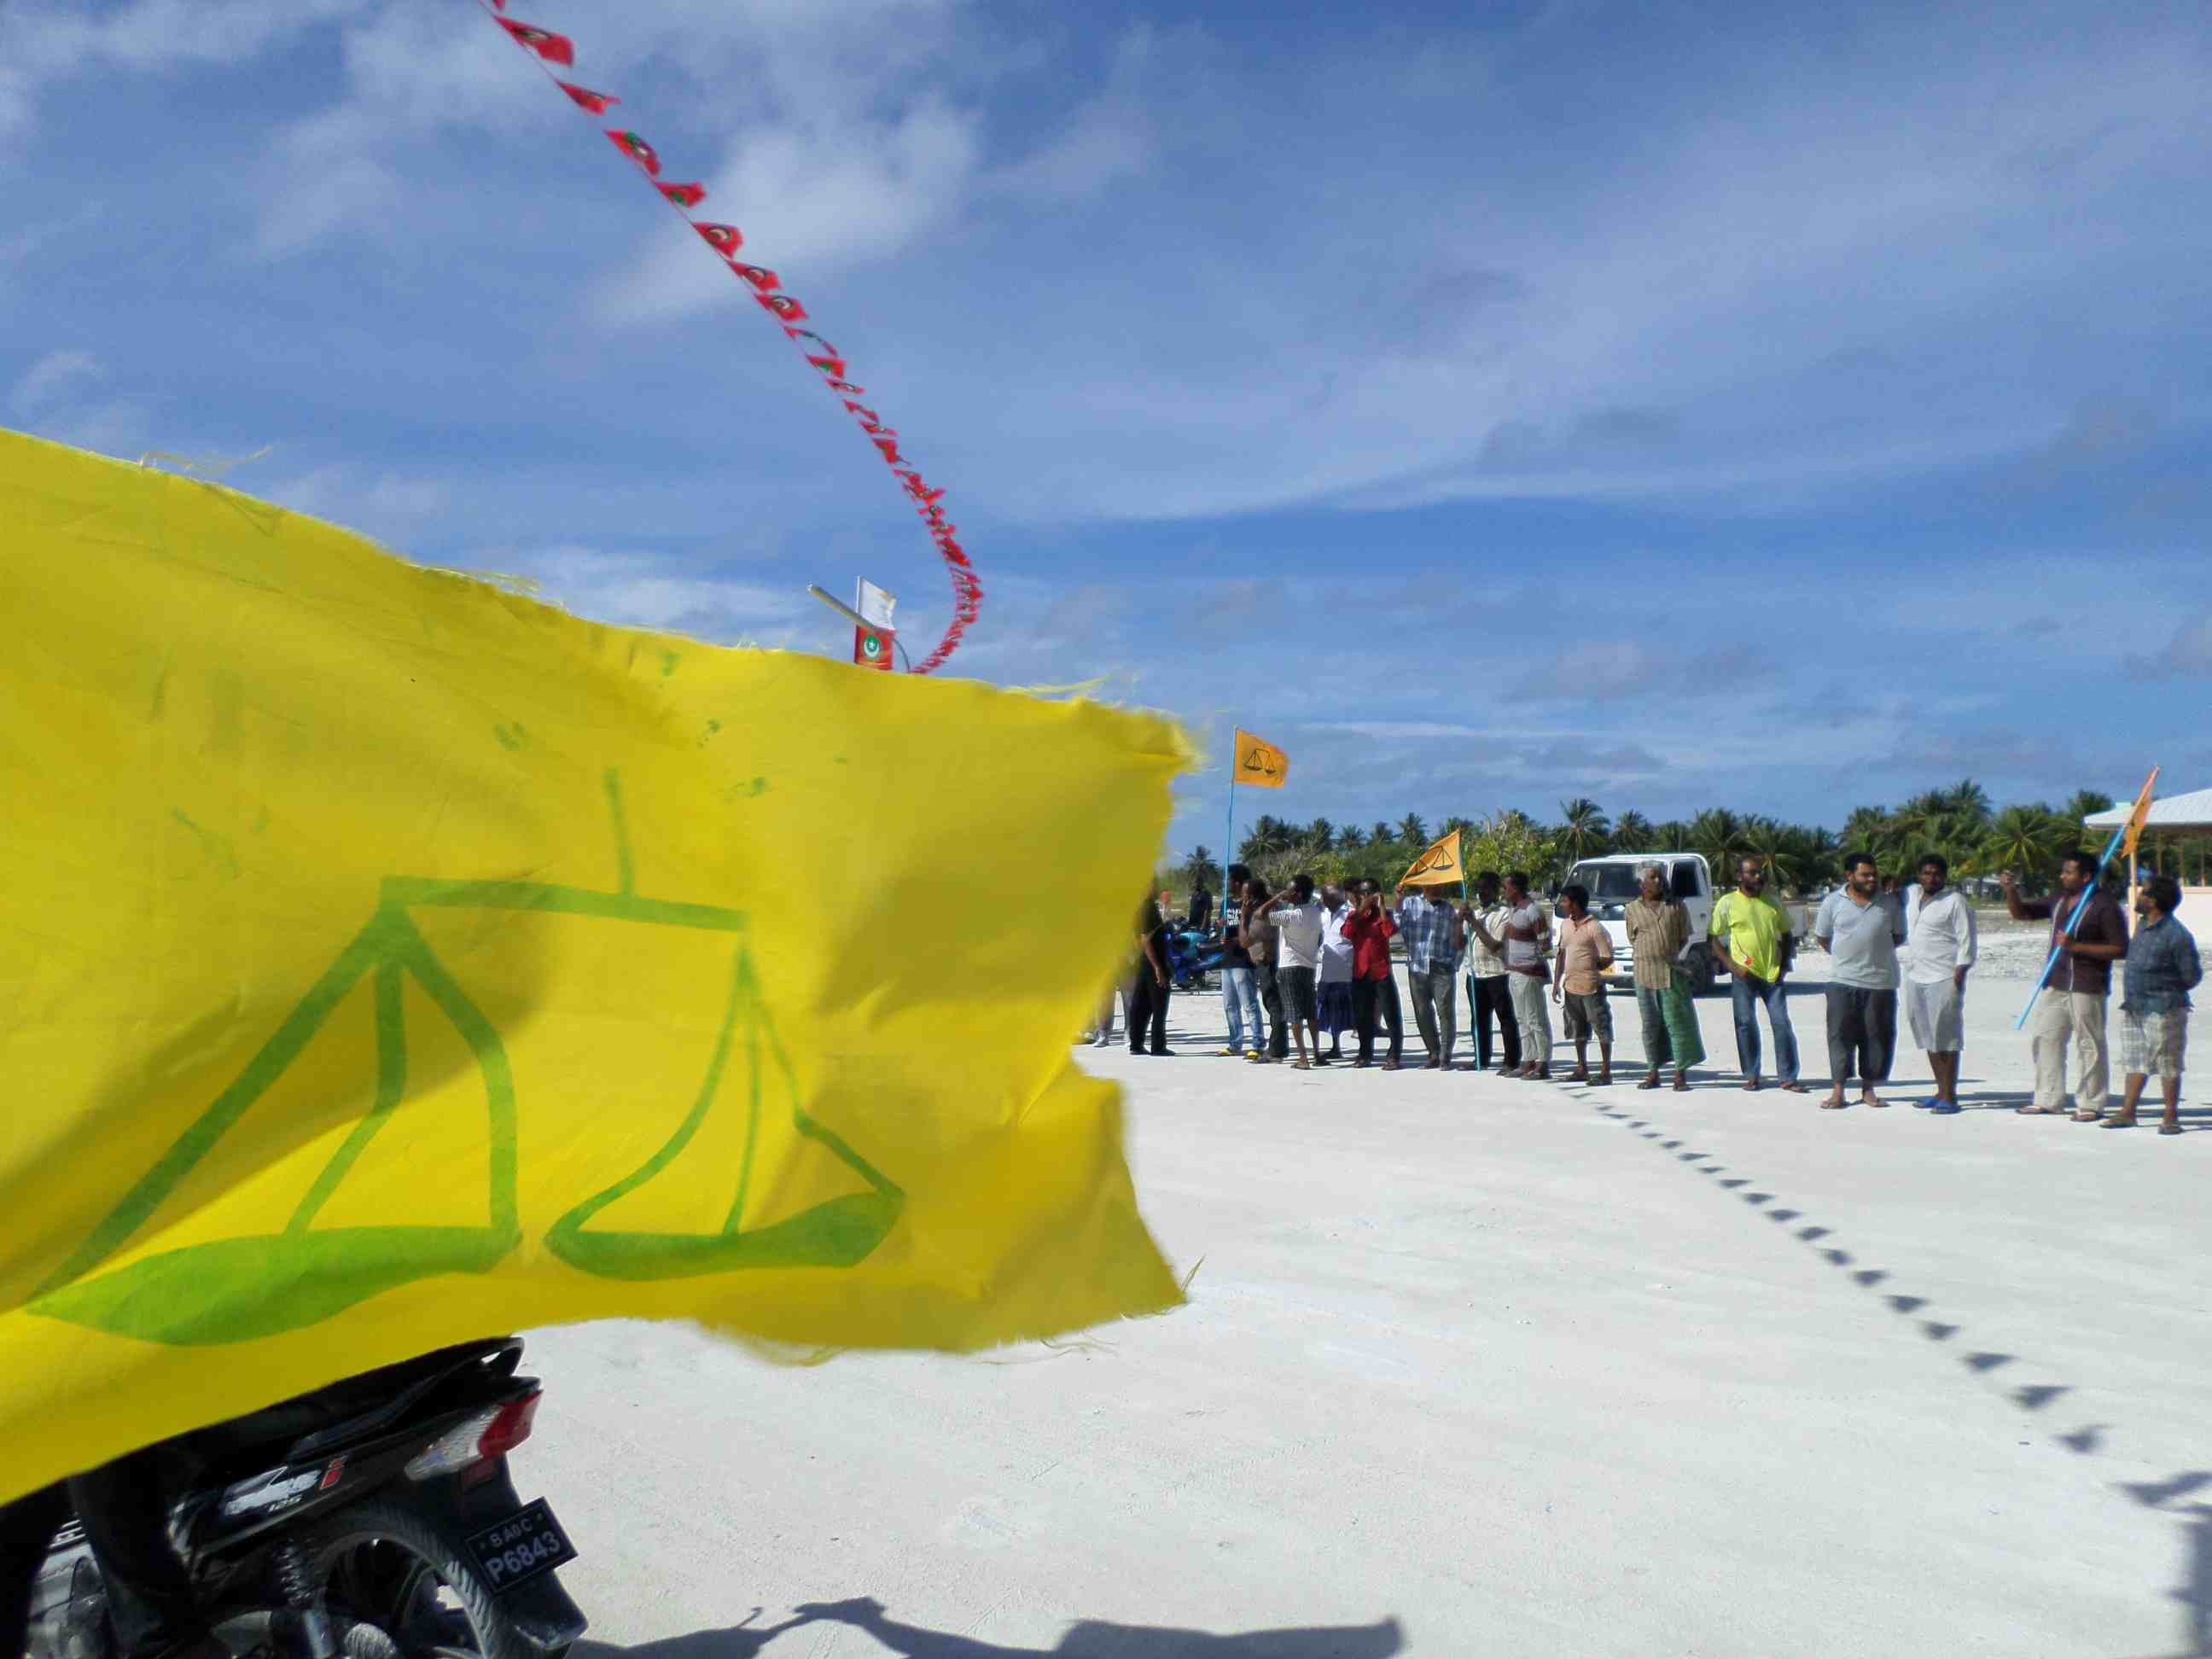 Kulhudhuffushi - Waiting for Nasheed